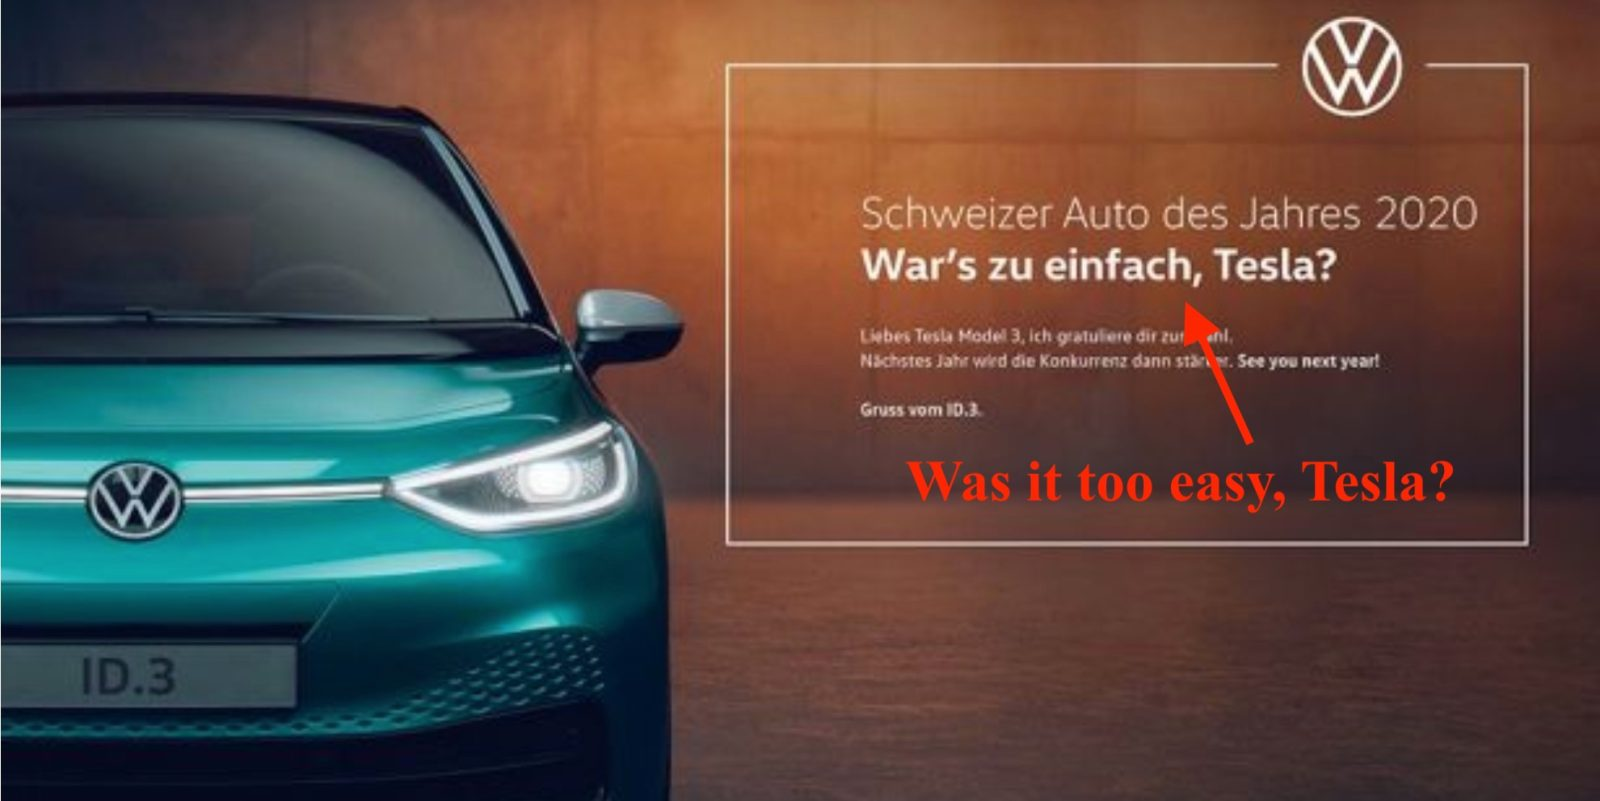 Tesla gets kudos from VW for car of the year award in ad, challenges them with ID.3